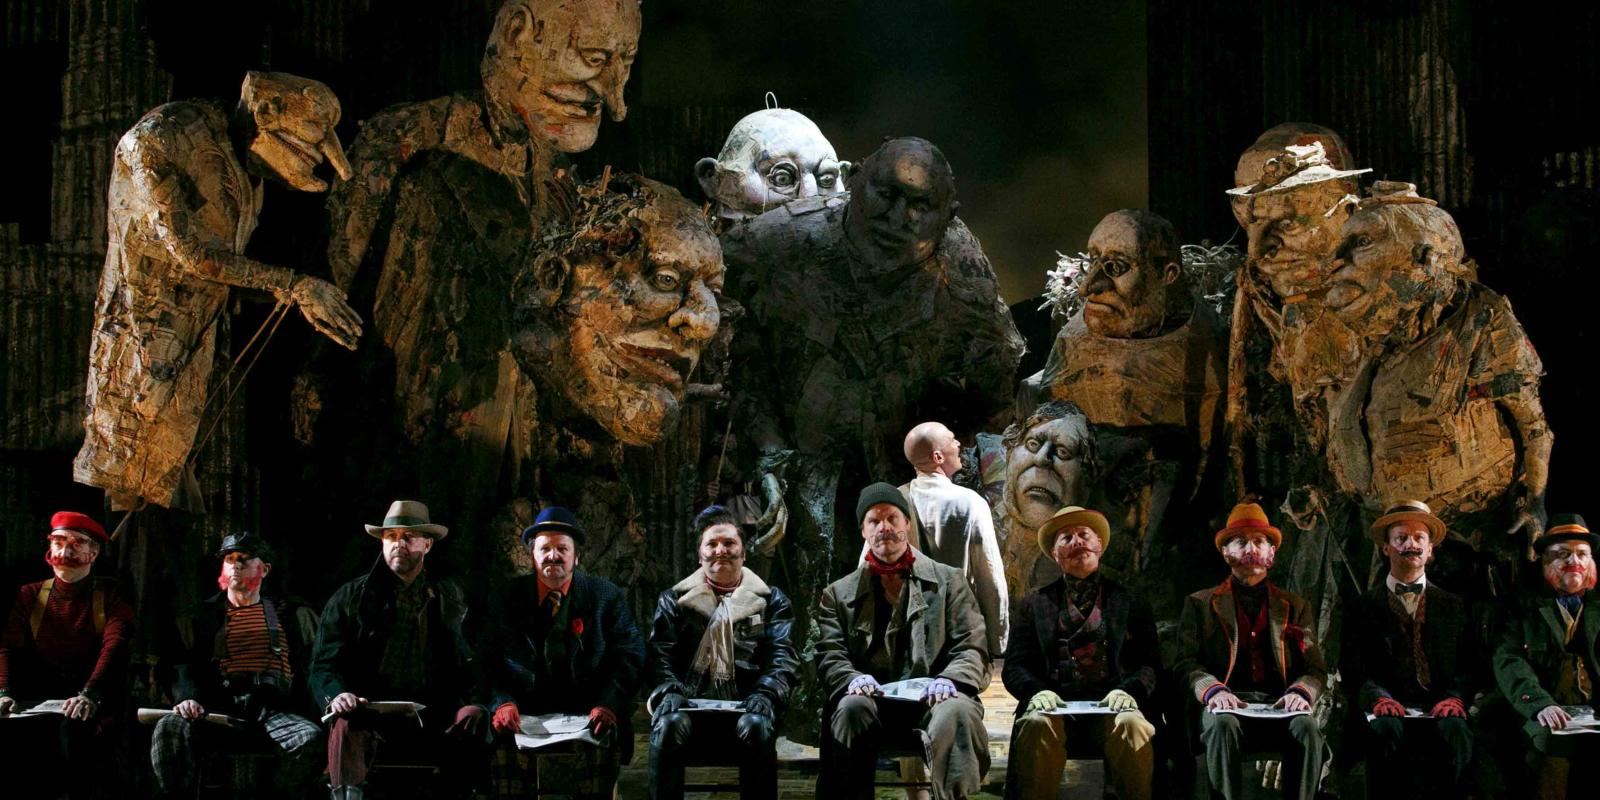 An image of Alan Oke and members of the ENO Chorus in Phelim McDermott's 2013 production of Satyagraha